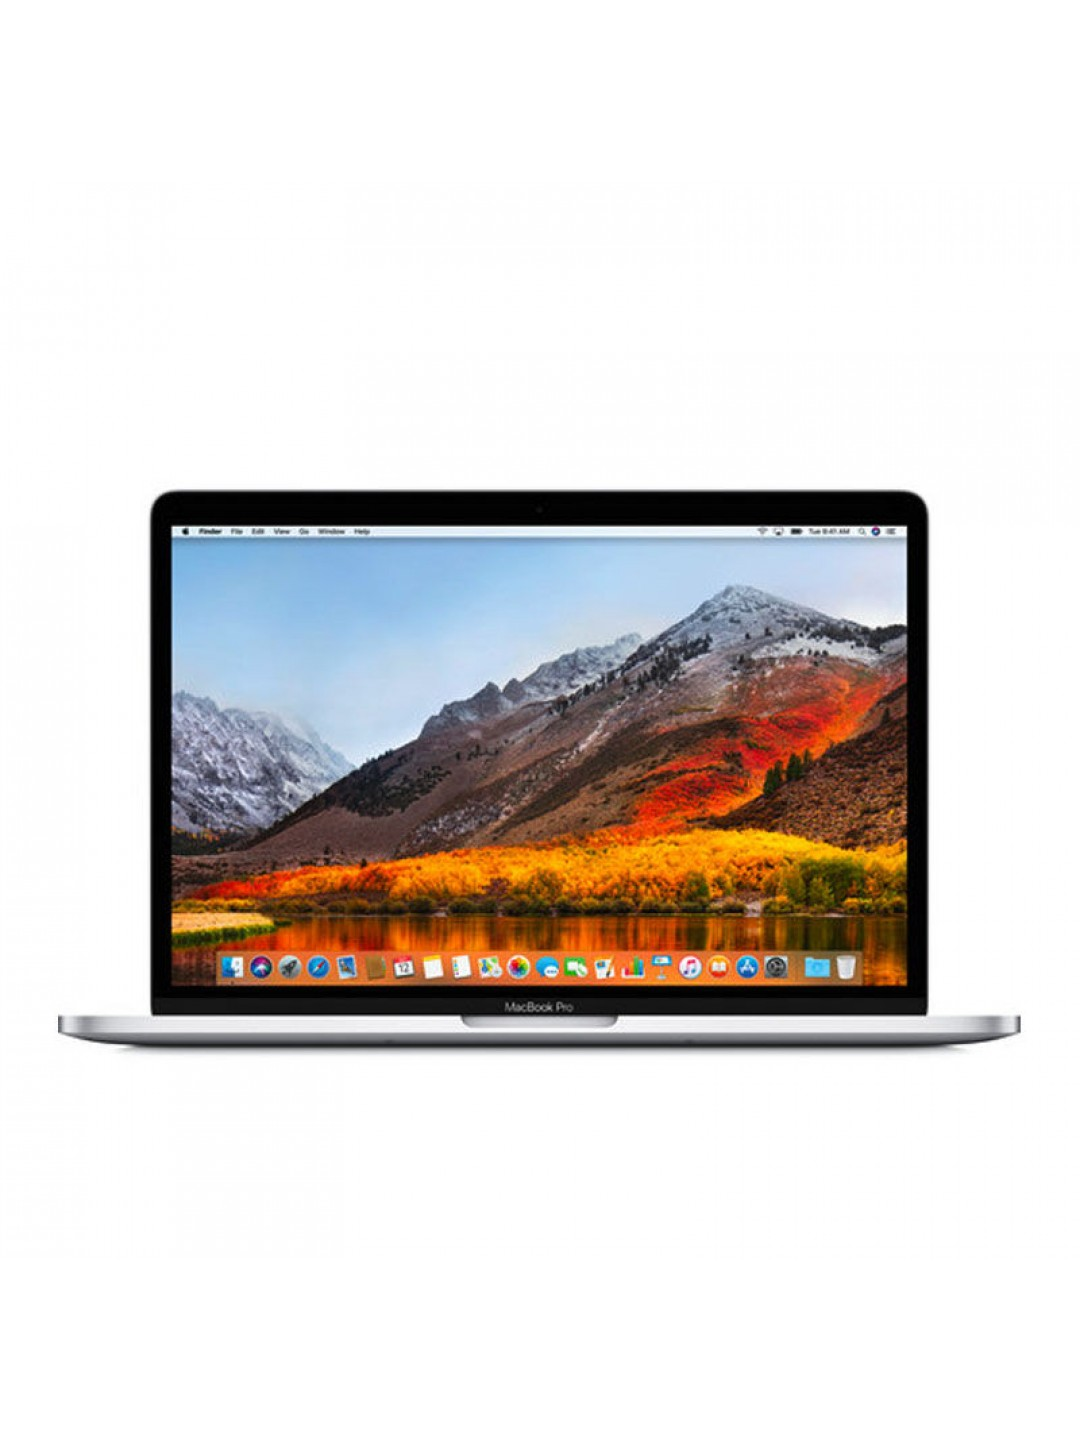 Laptop Apple Macbook Pro Touch Bar 2018 MR962 15.4 inch/2.2GHz 6-core Intel Core i7/16GB/256GB/Radeon Pro 555X 4GB